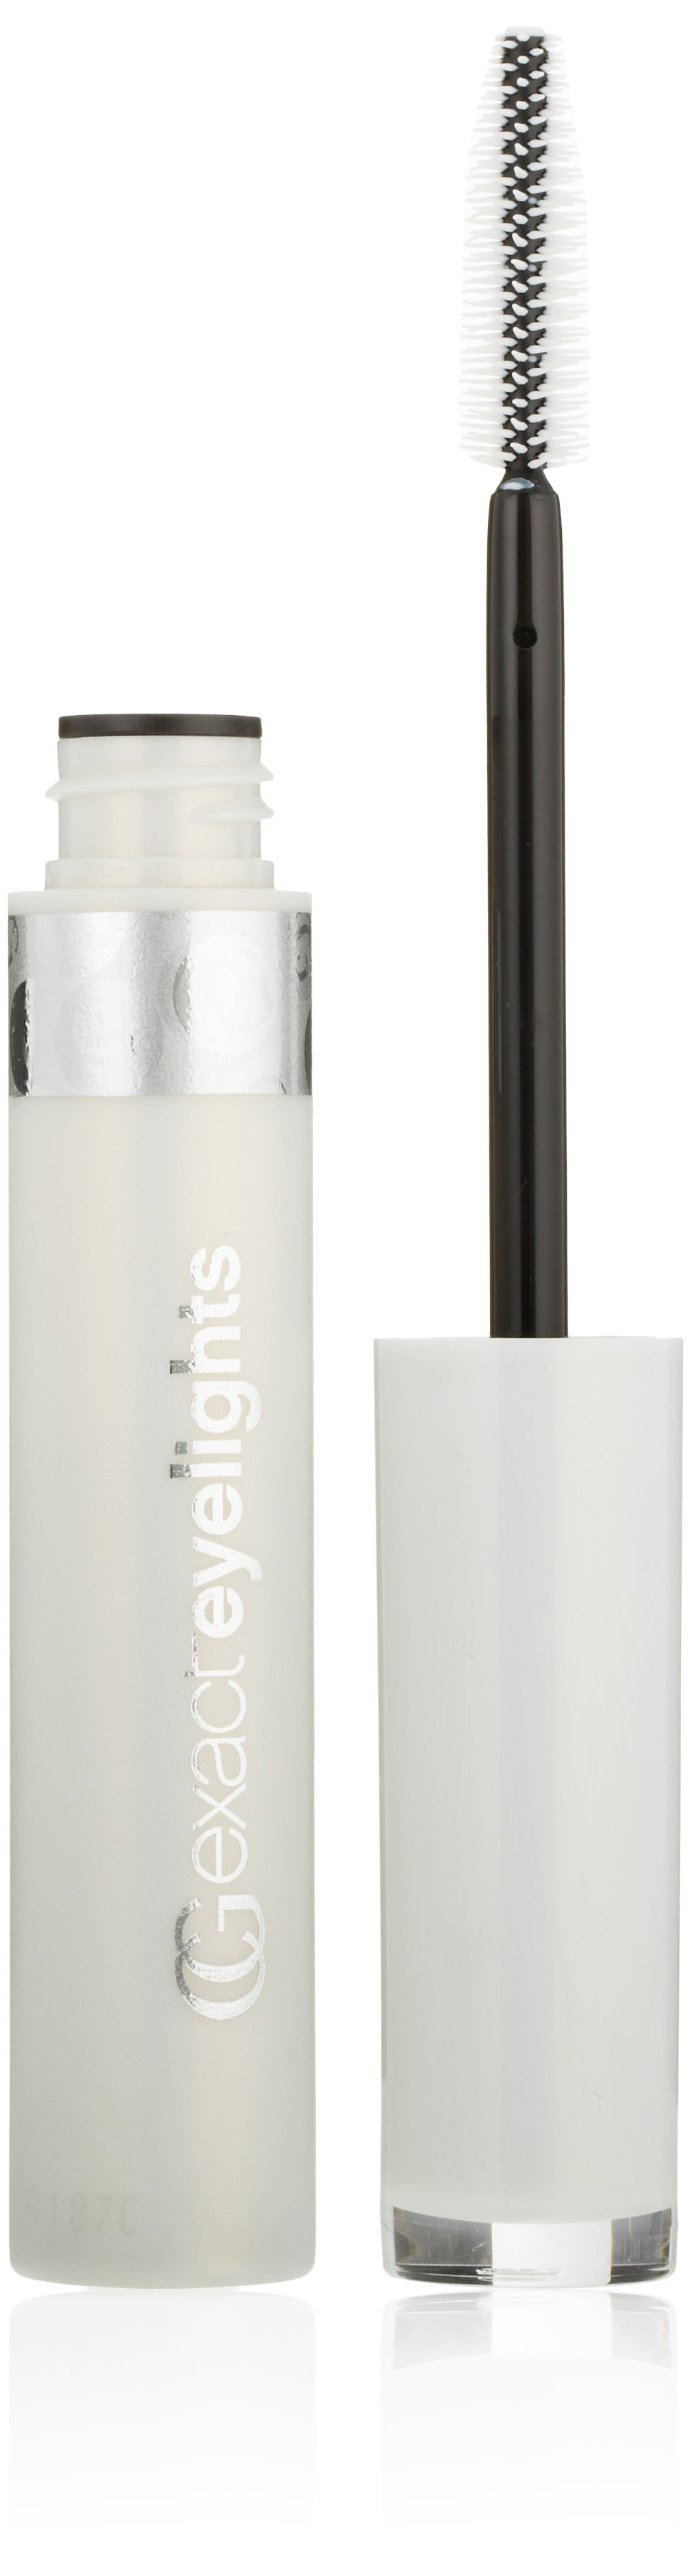 CoverGirl Exact EyeLights Regular Mascara, Black Sapphire 710 (for Blue Eyes), 0.24 Ounce Packages, 1 Count by COVERGIRL